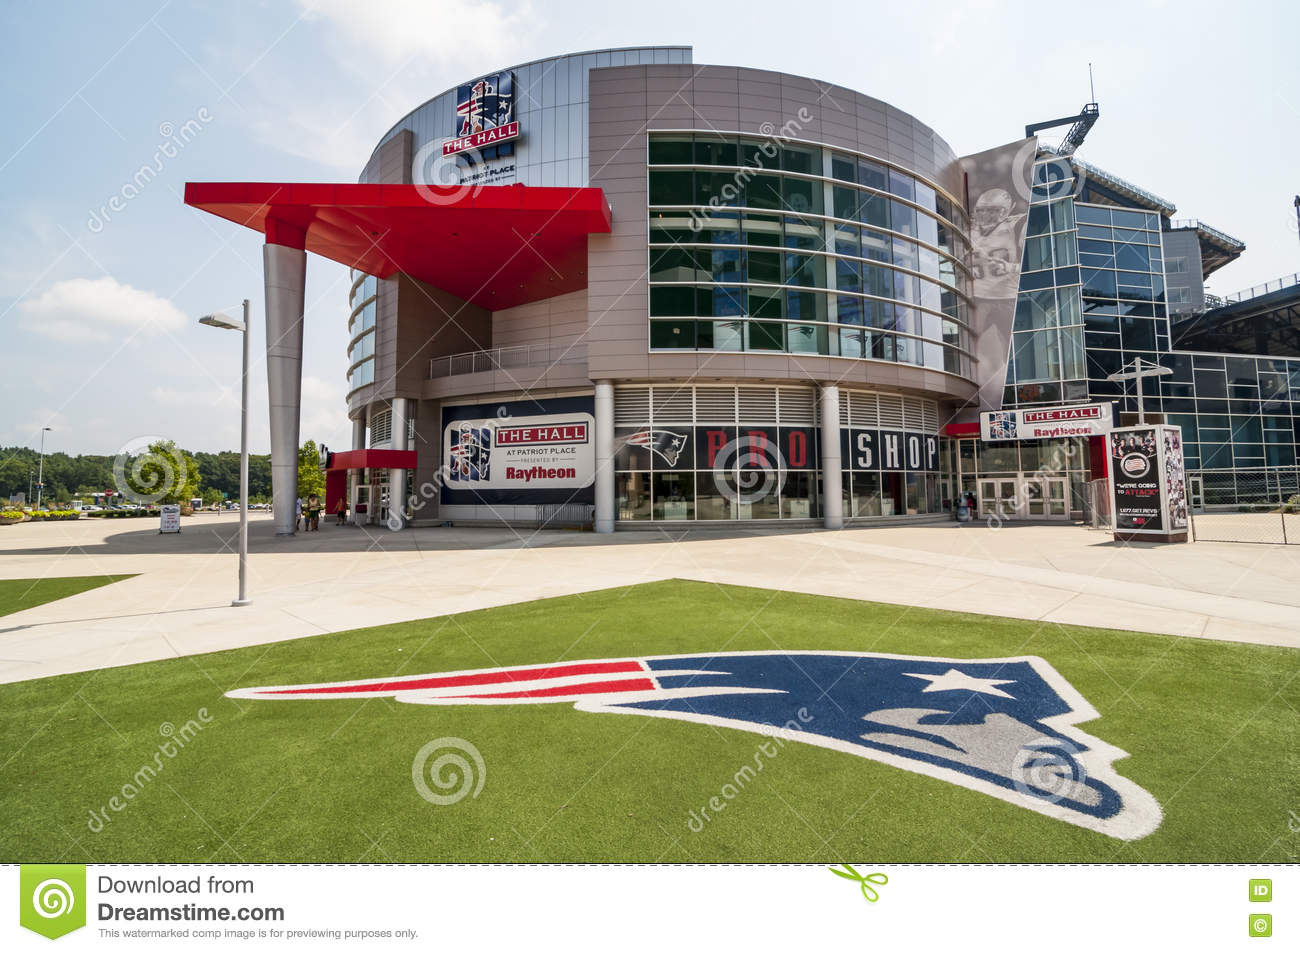 c04e506d0e5 FOXBORO, MA - AUGUST 4: Gillette Stadium, home of the New England Patriots  on August 4, 2012. It is located 21 miles southwest of Boston and 20 miles  from ...